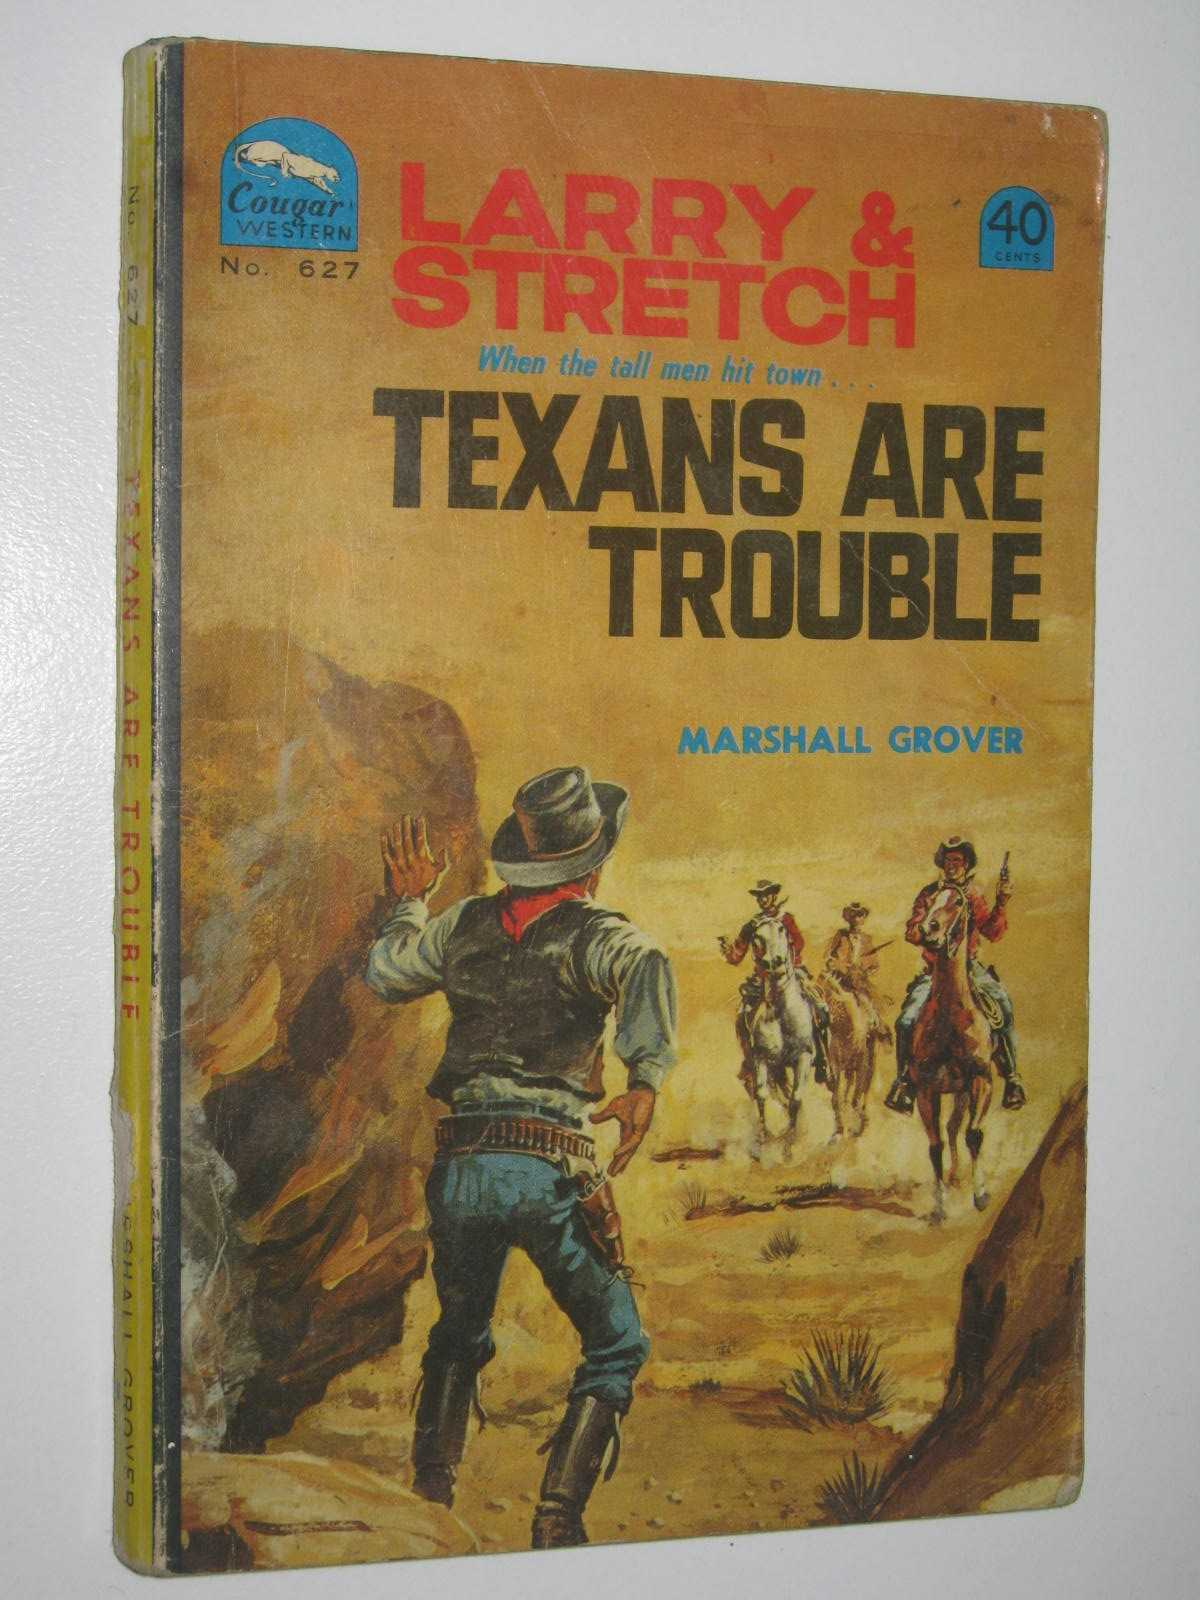 Image for Texans are Trouble - Larry and Stretch [Cougar Western] Series #627